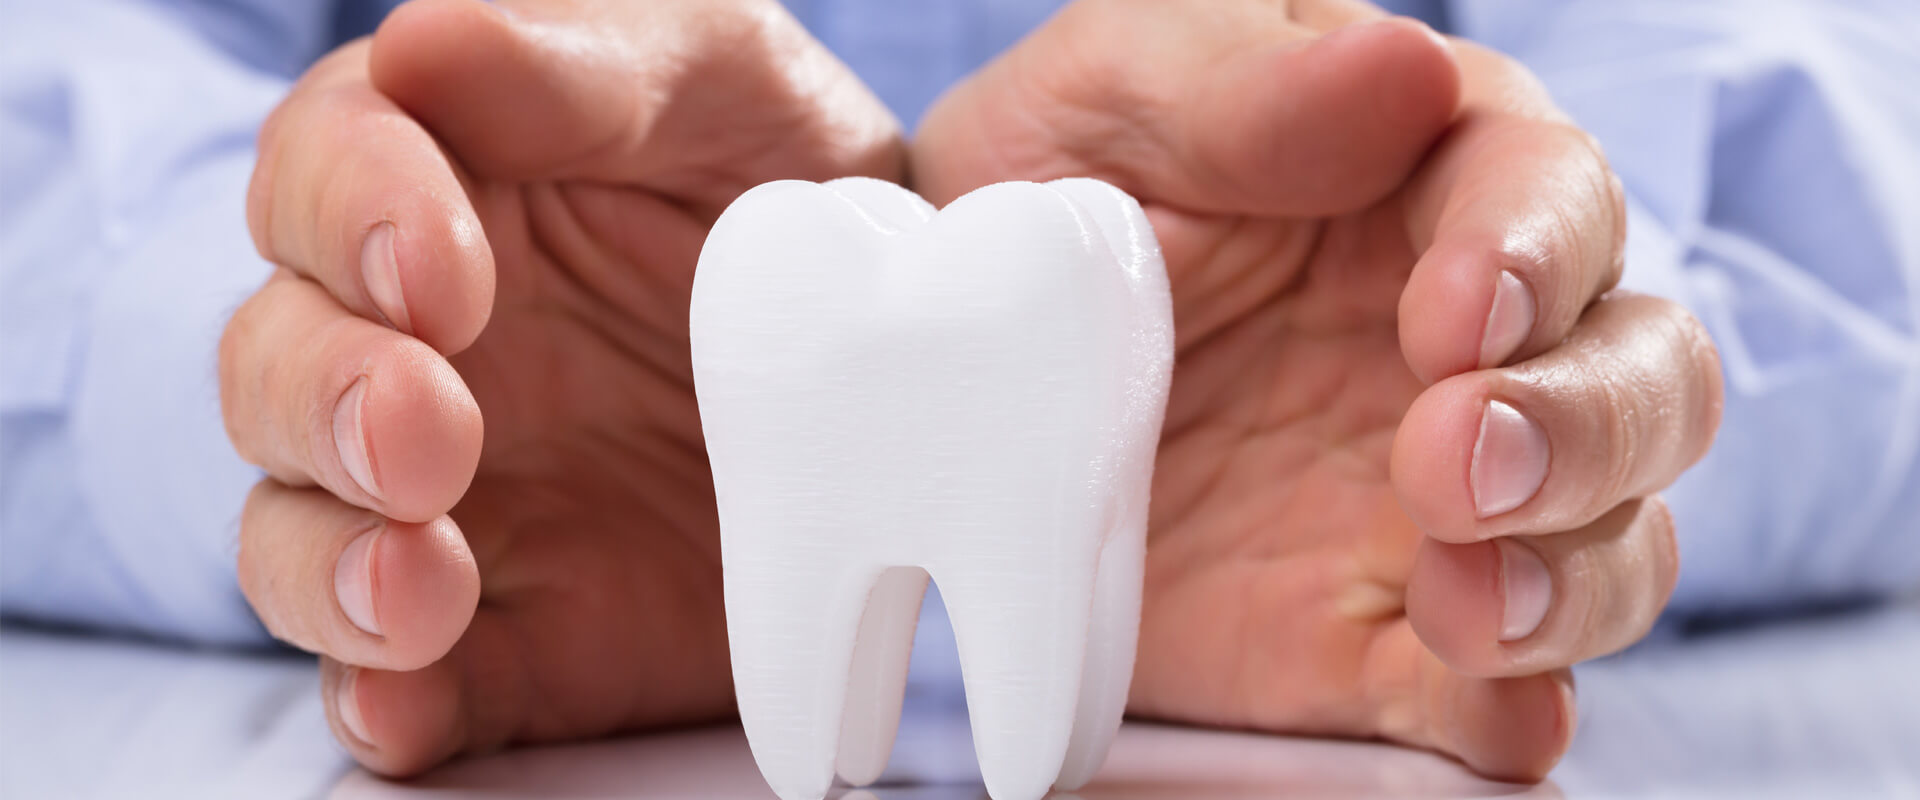 Closeup of a dental crown structure protected by two hands